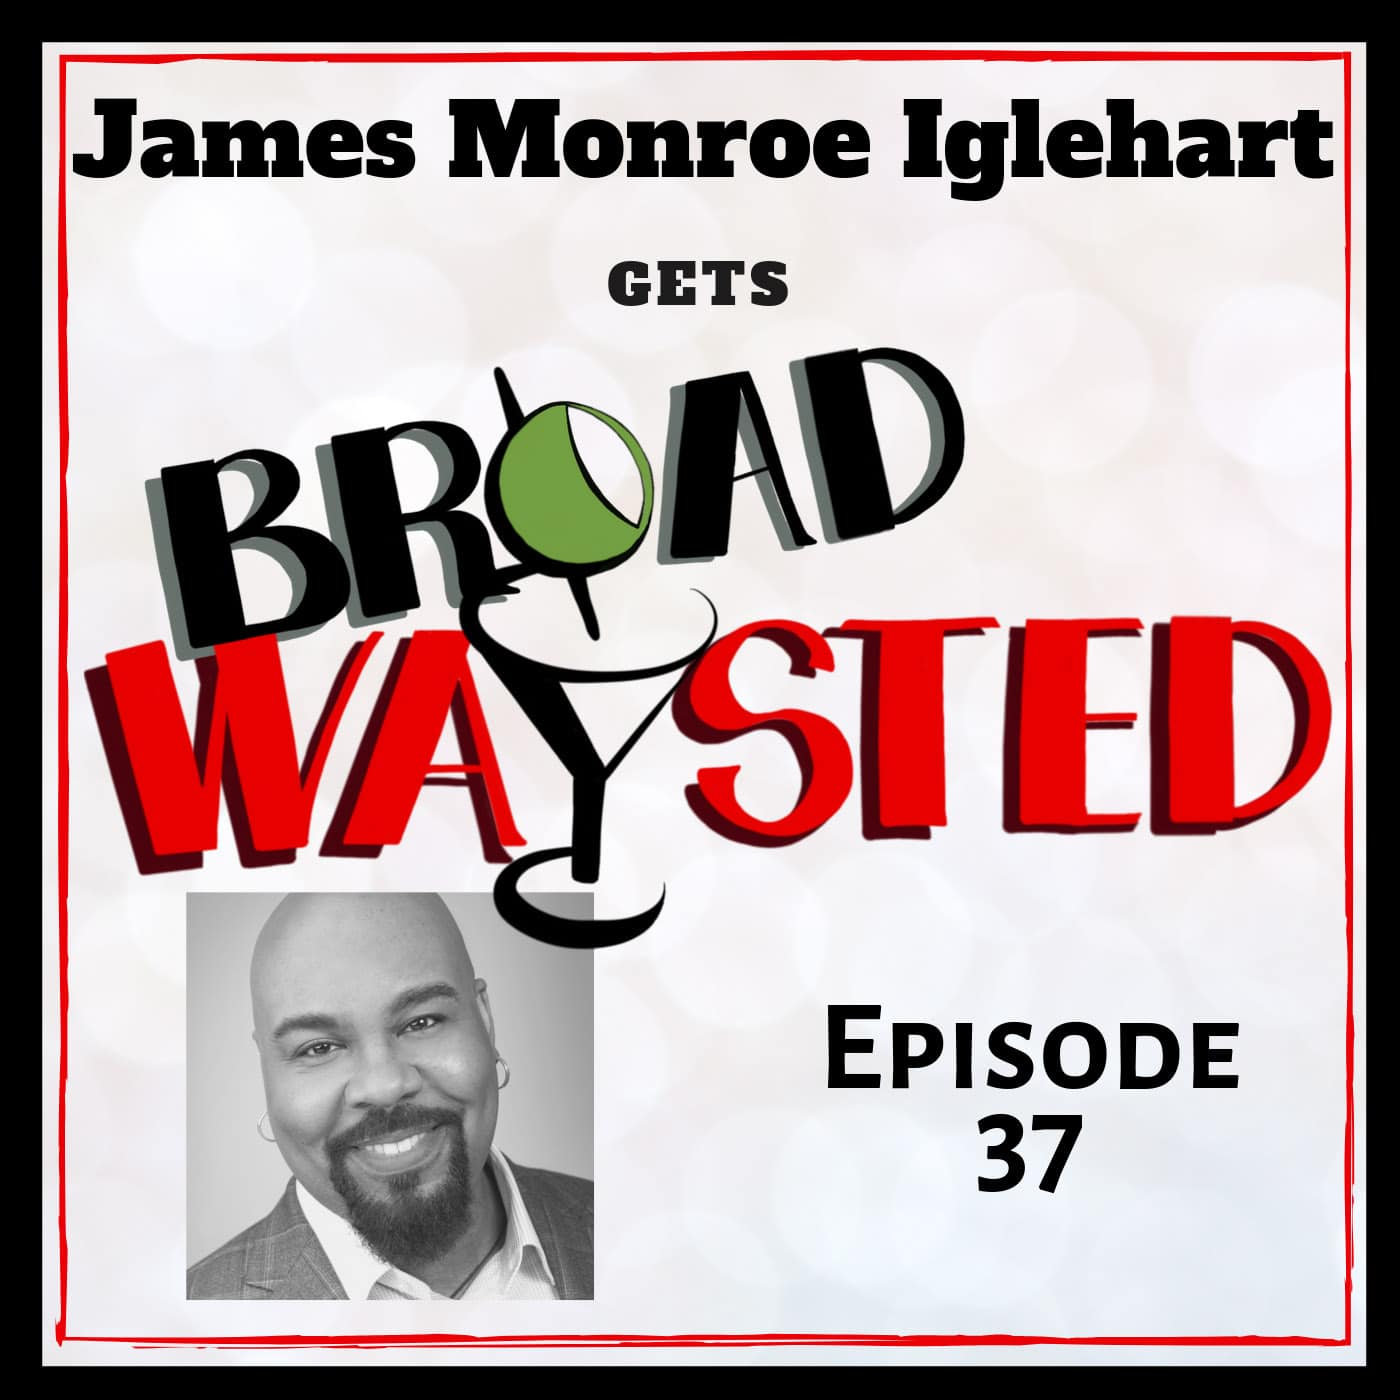 Broadwaysted Ep 37 James Monroe Iglehart